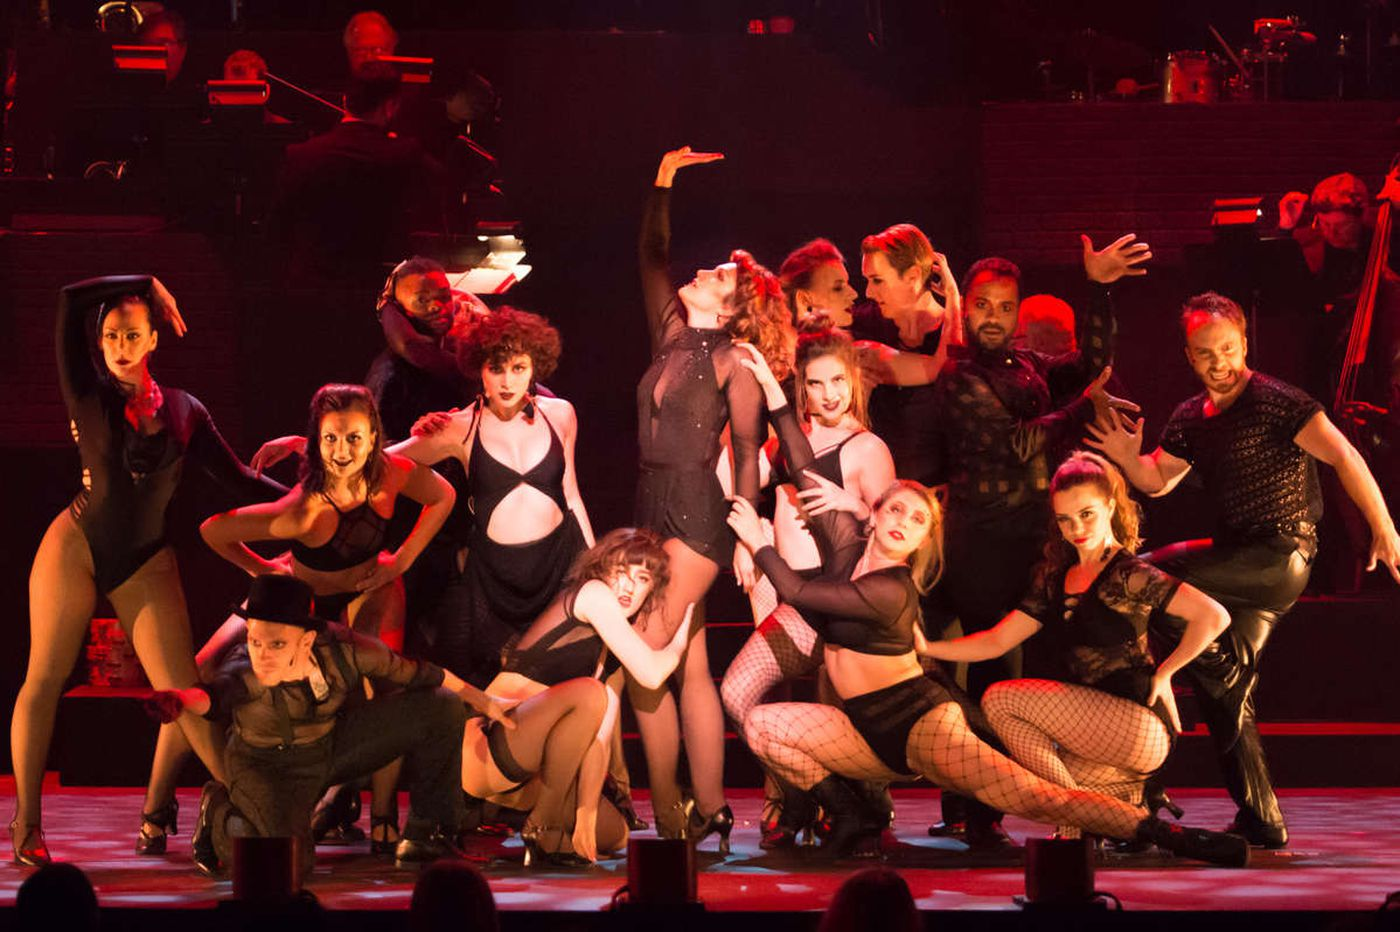 'Chicago' at Broadway Theatre of Pitman: Lots of talent, entertainment